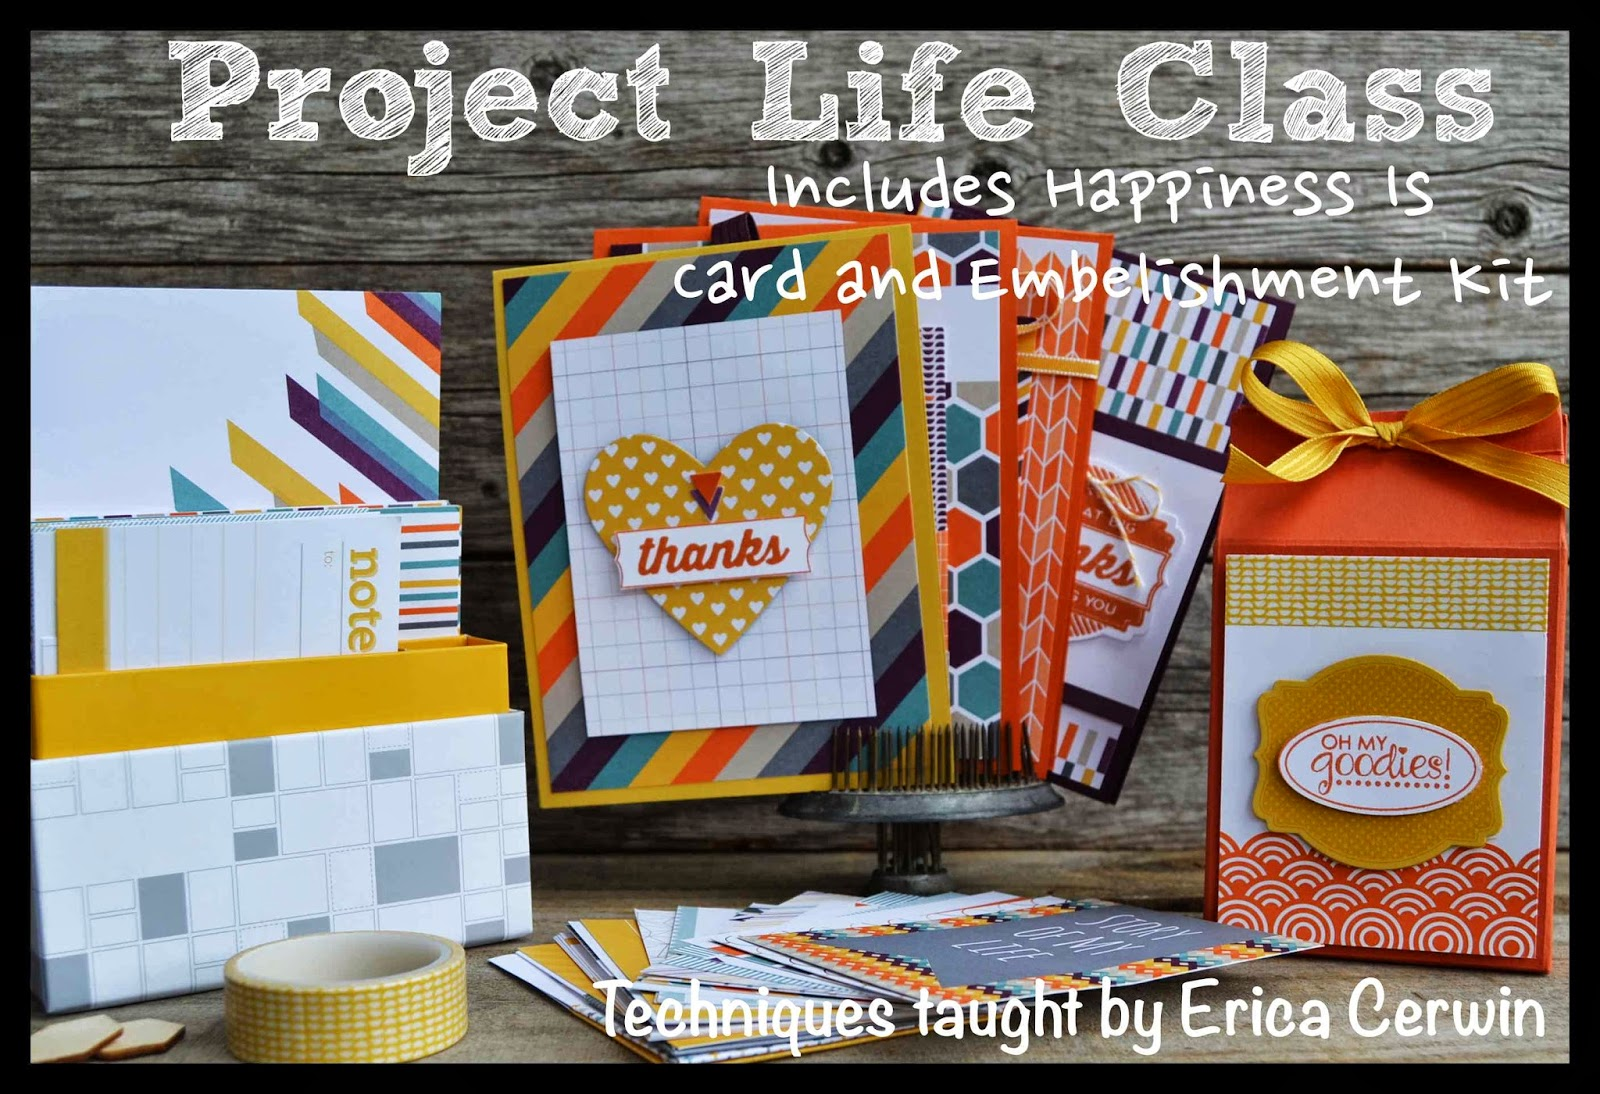 How to make scrapbook for school project - Project Life Class Come Learn How To Use The 100 Project Life Cards To Make Quick Cards 3d Projects And A Simple Scrapbook Page